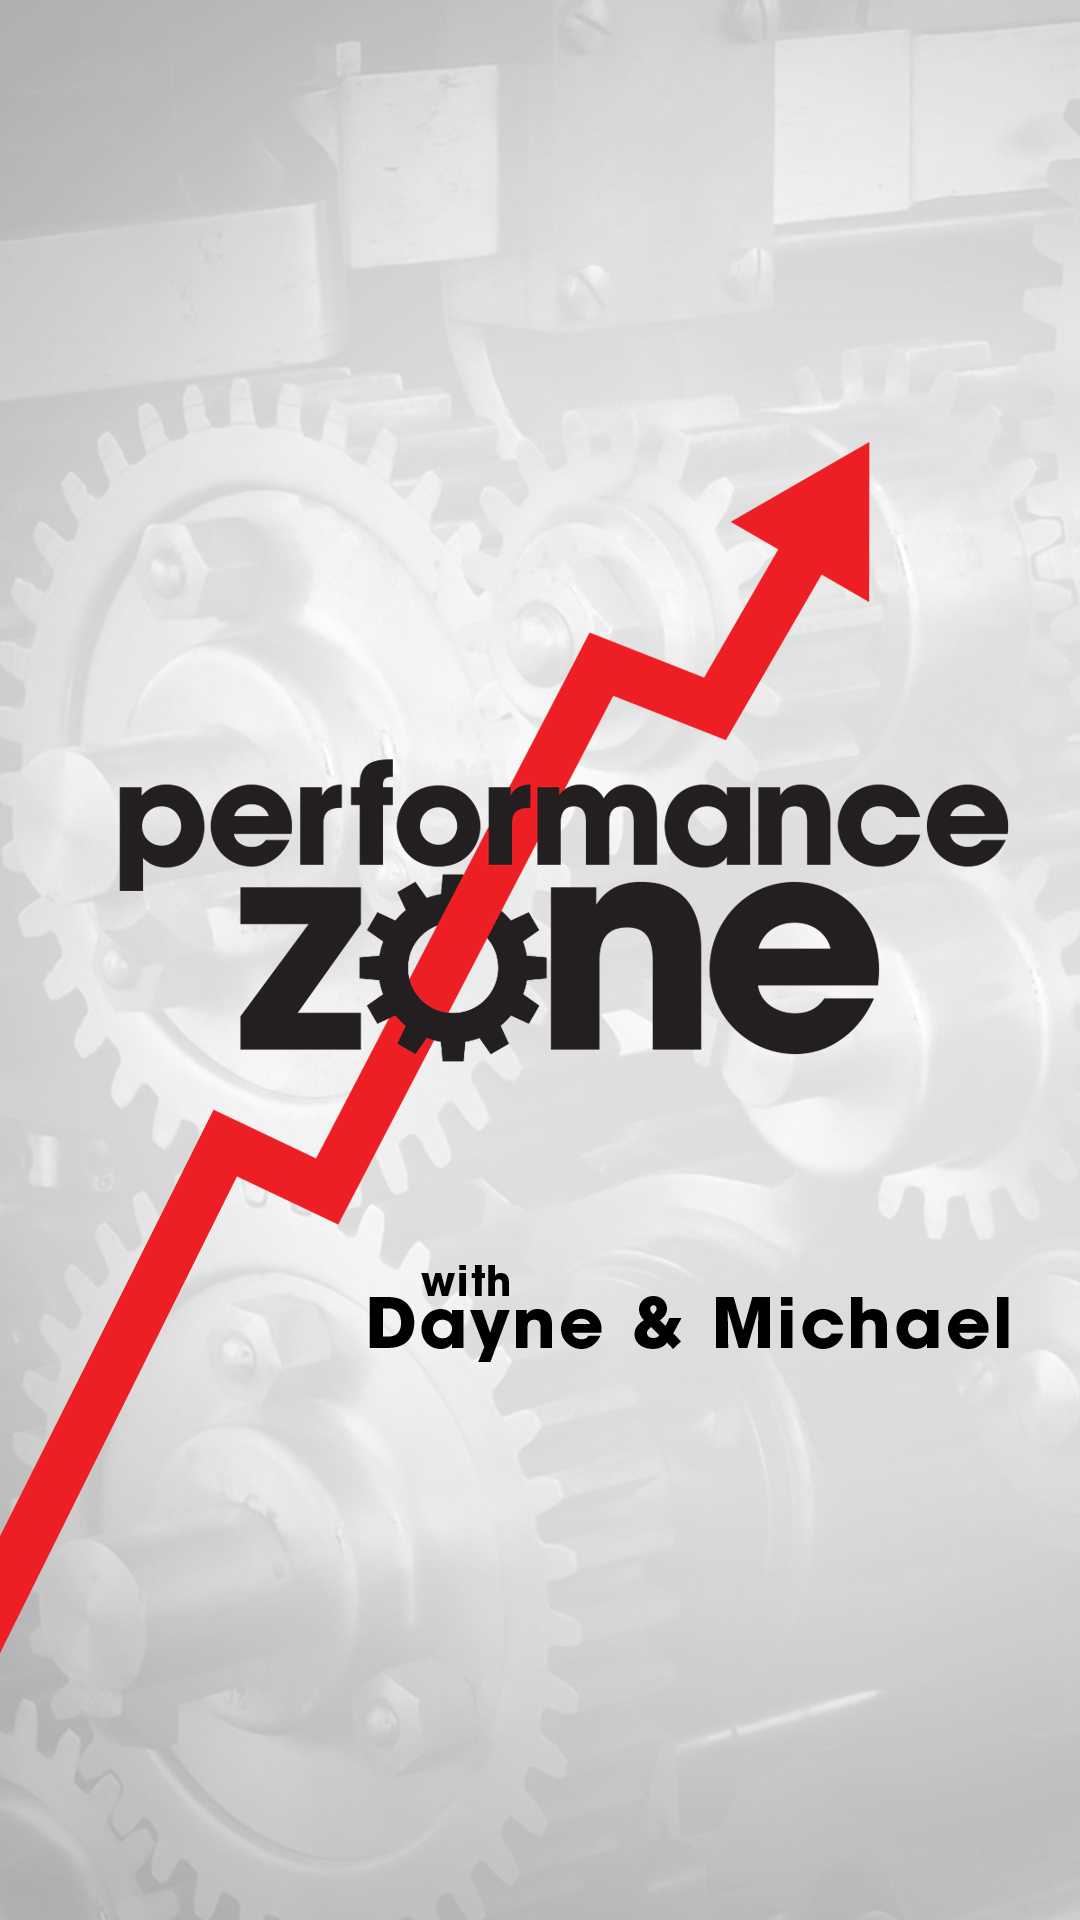 performance zone logo.JPG